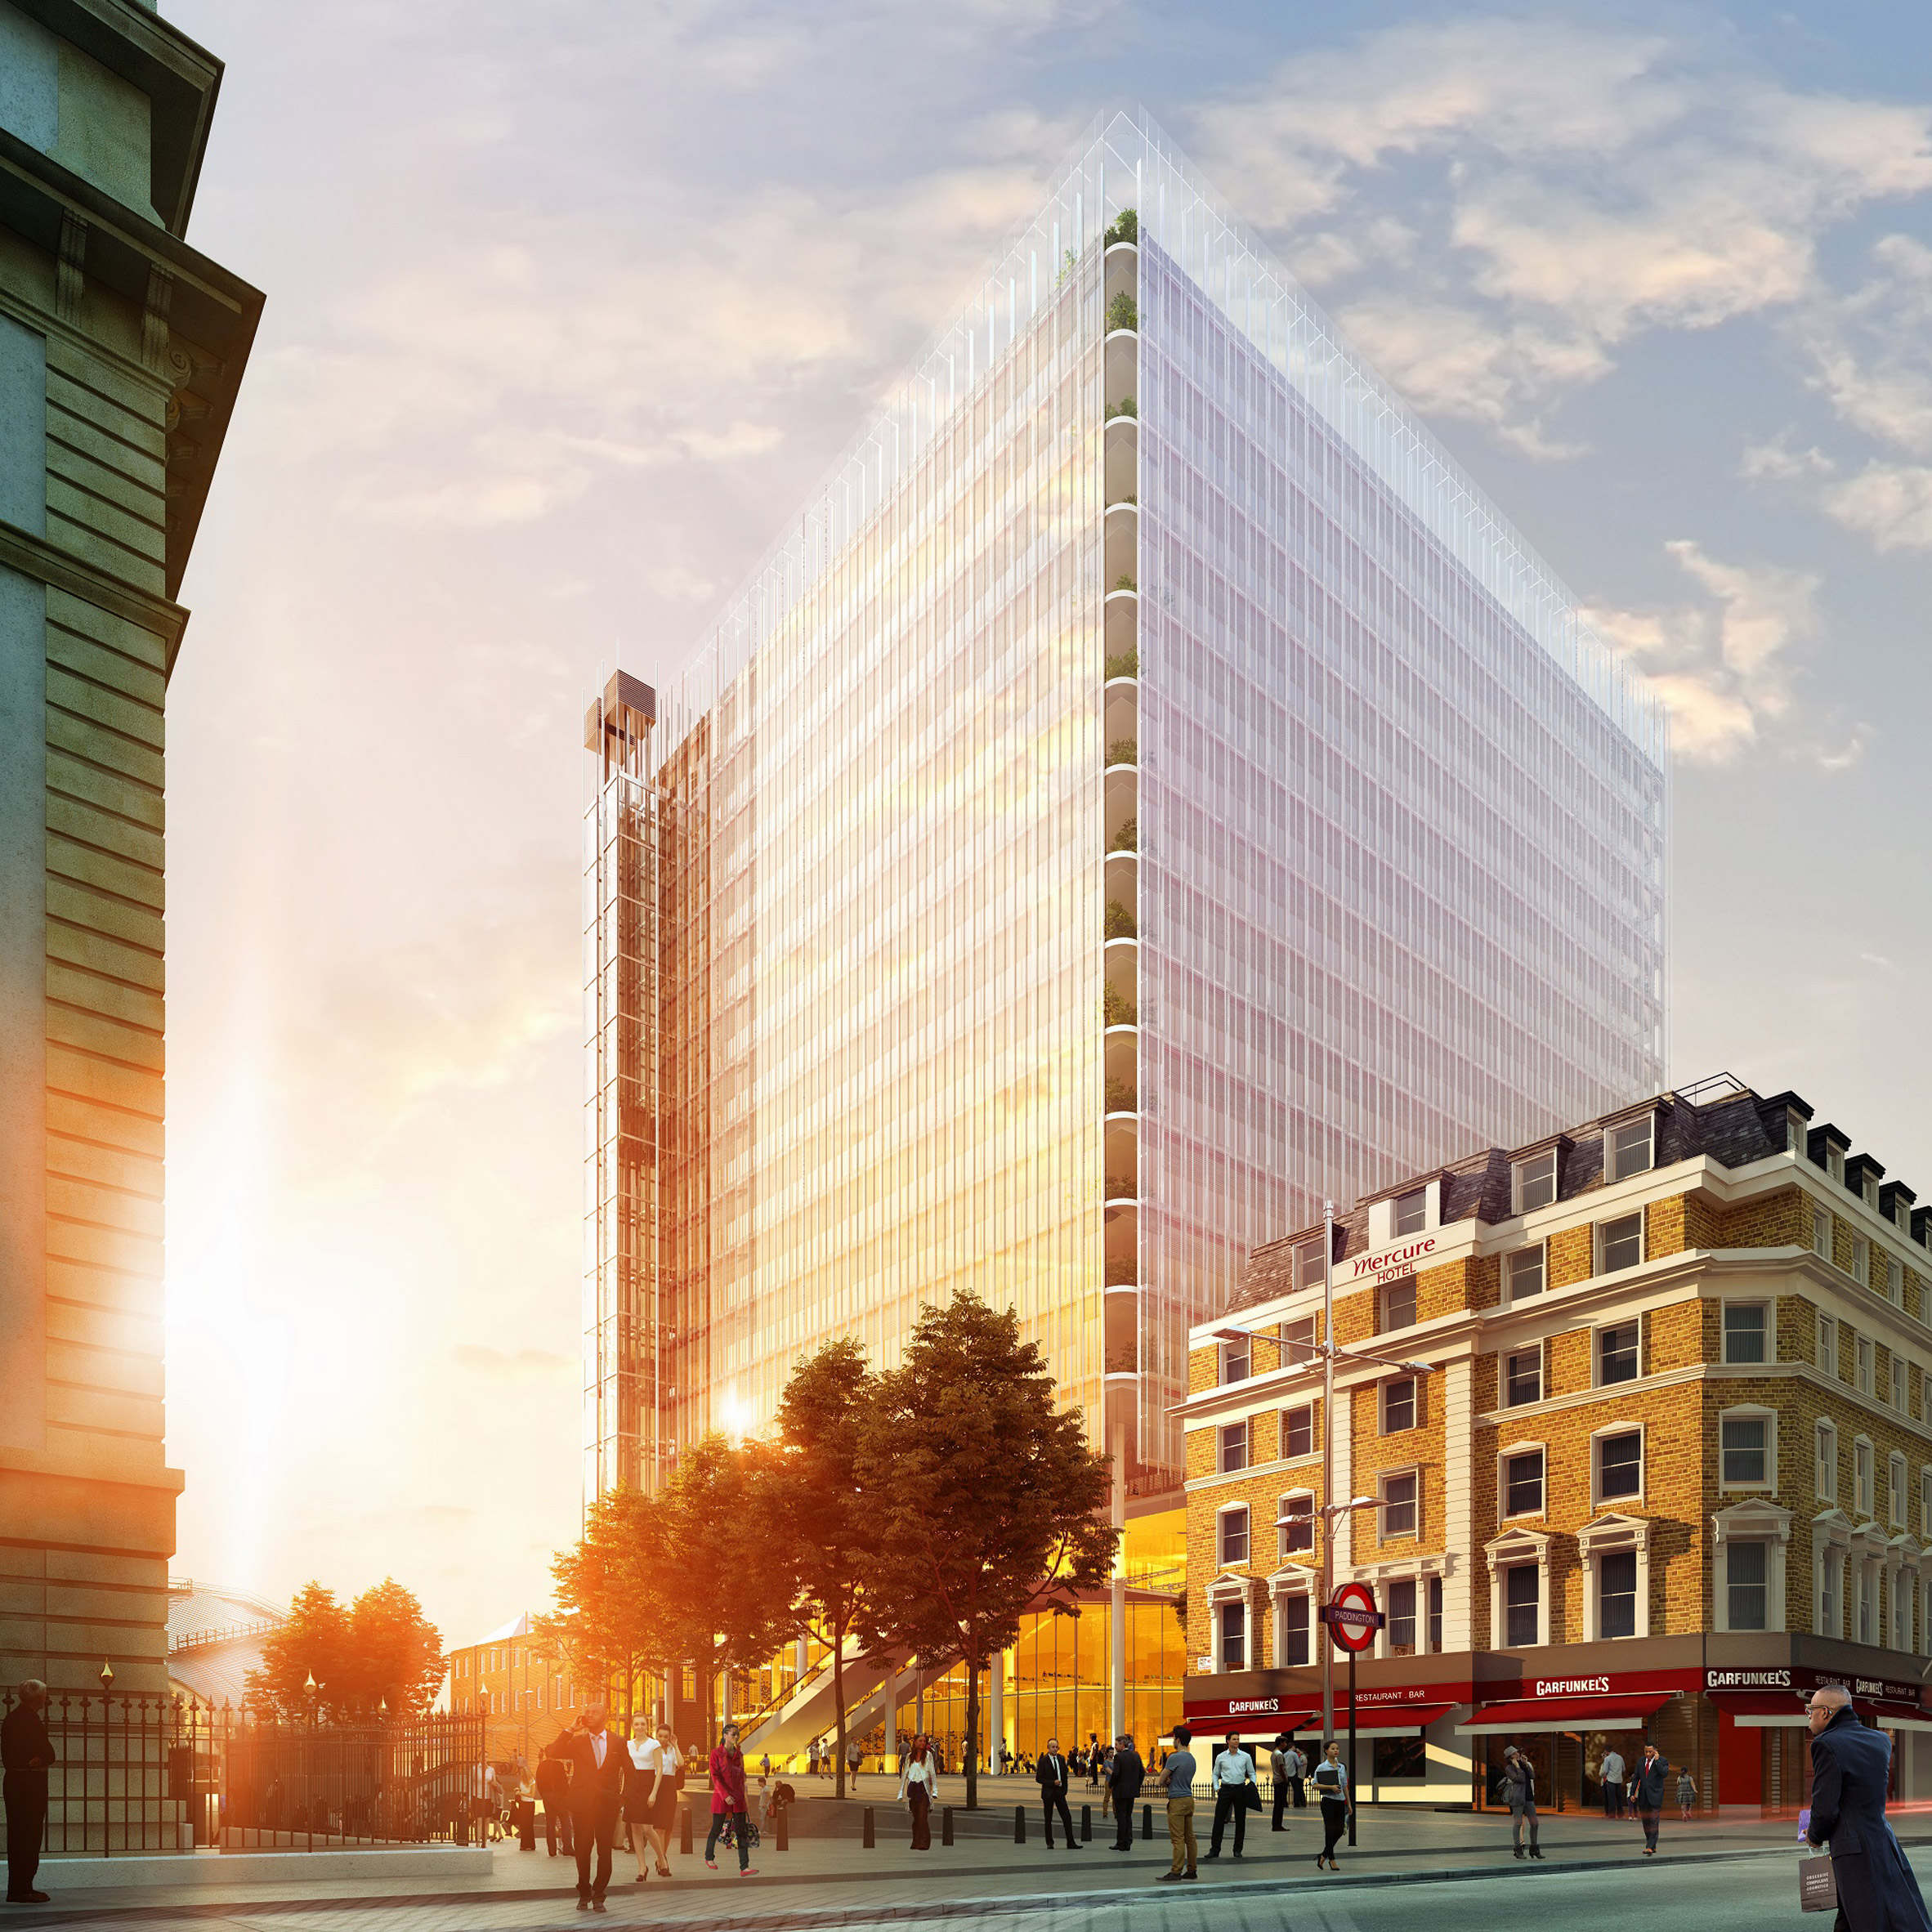 Plans for Renzo Piano's Paddington Cube put on hold